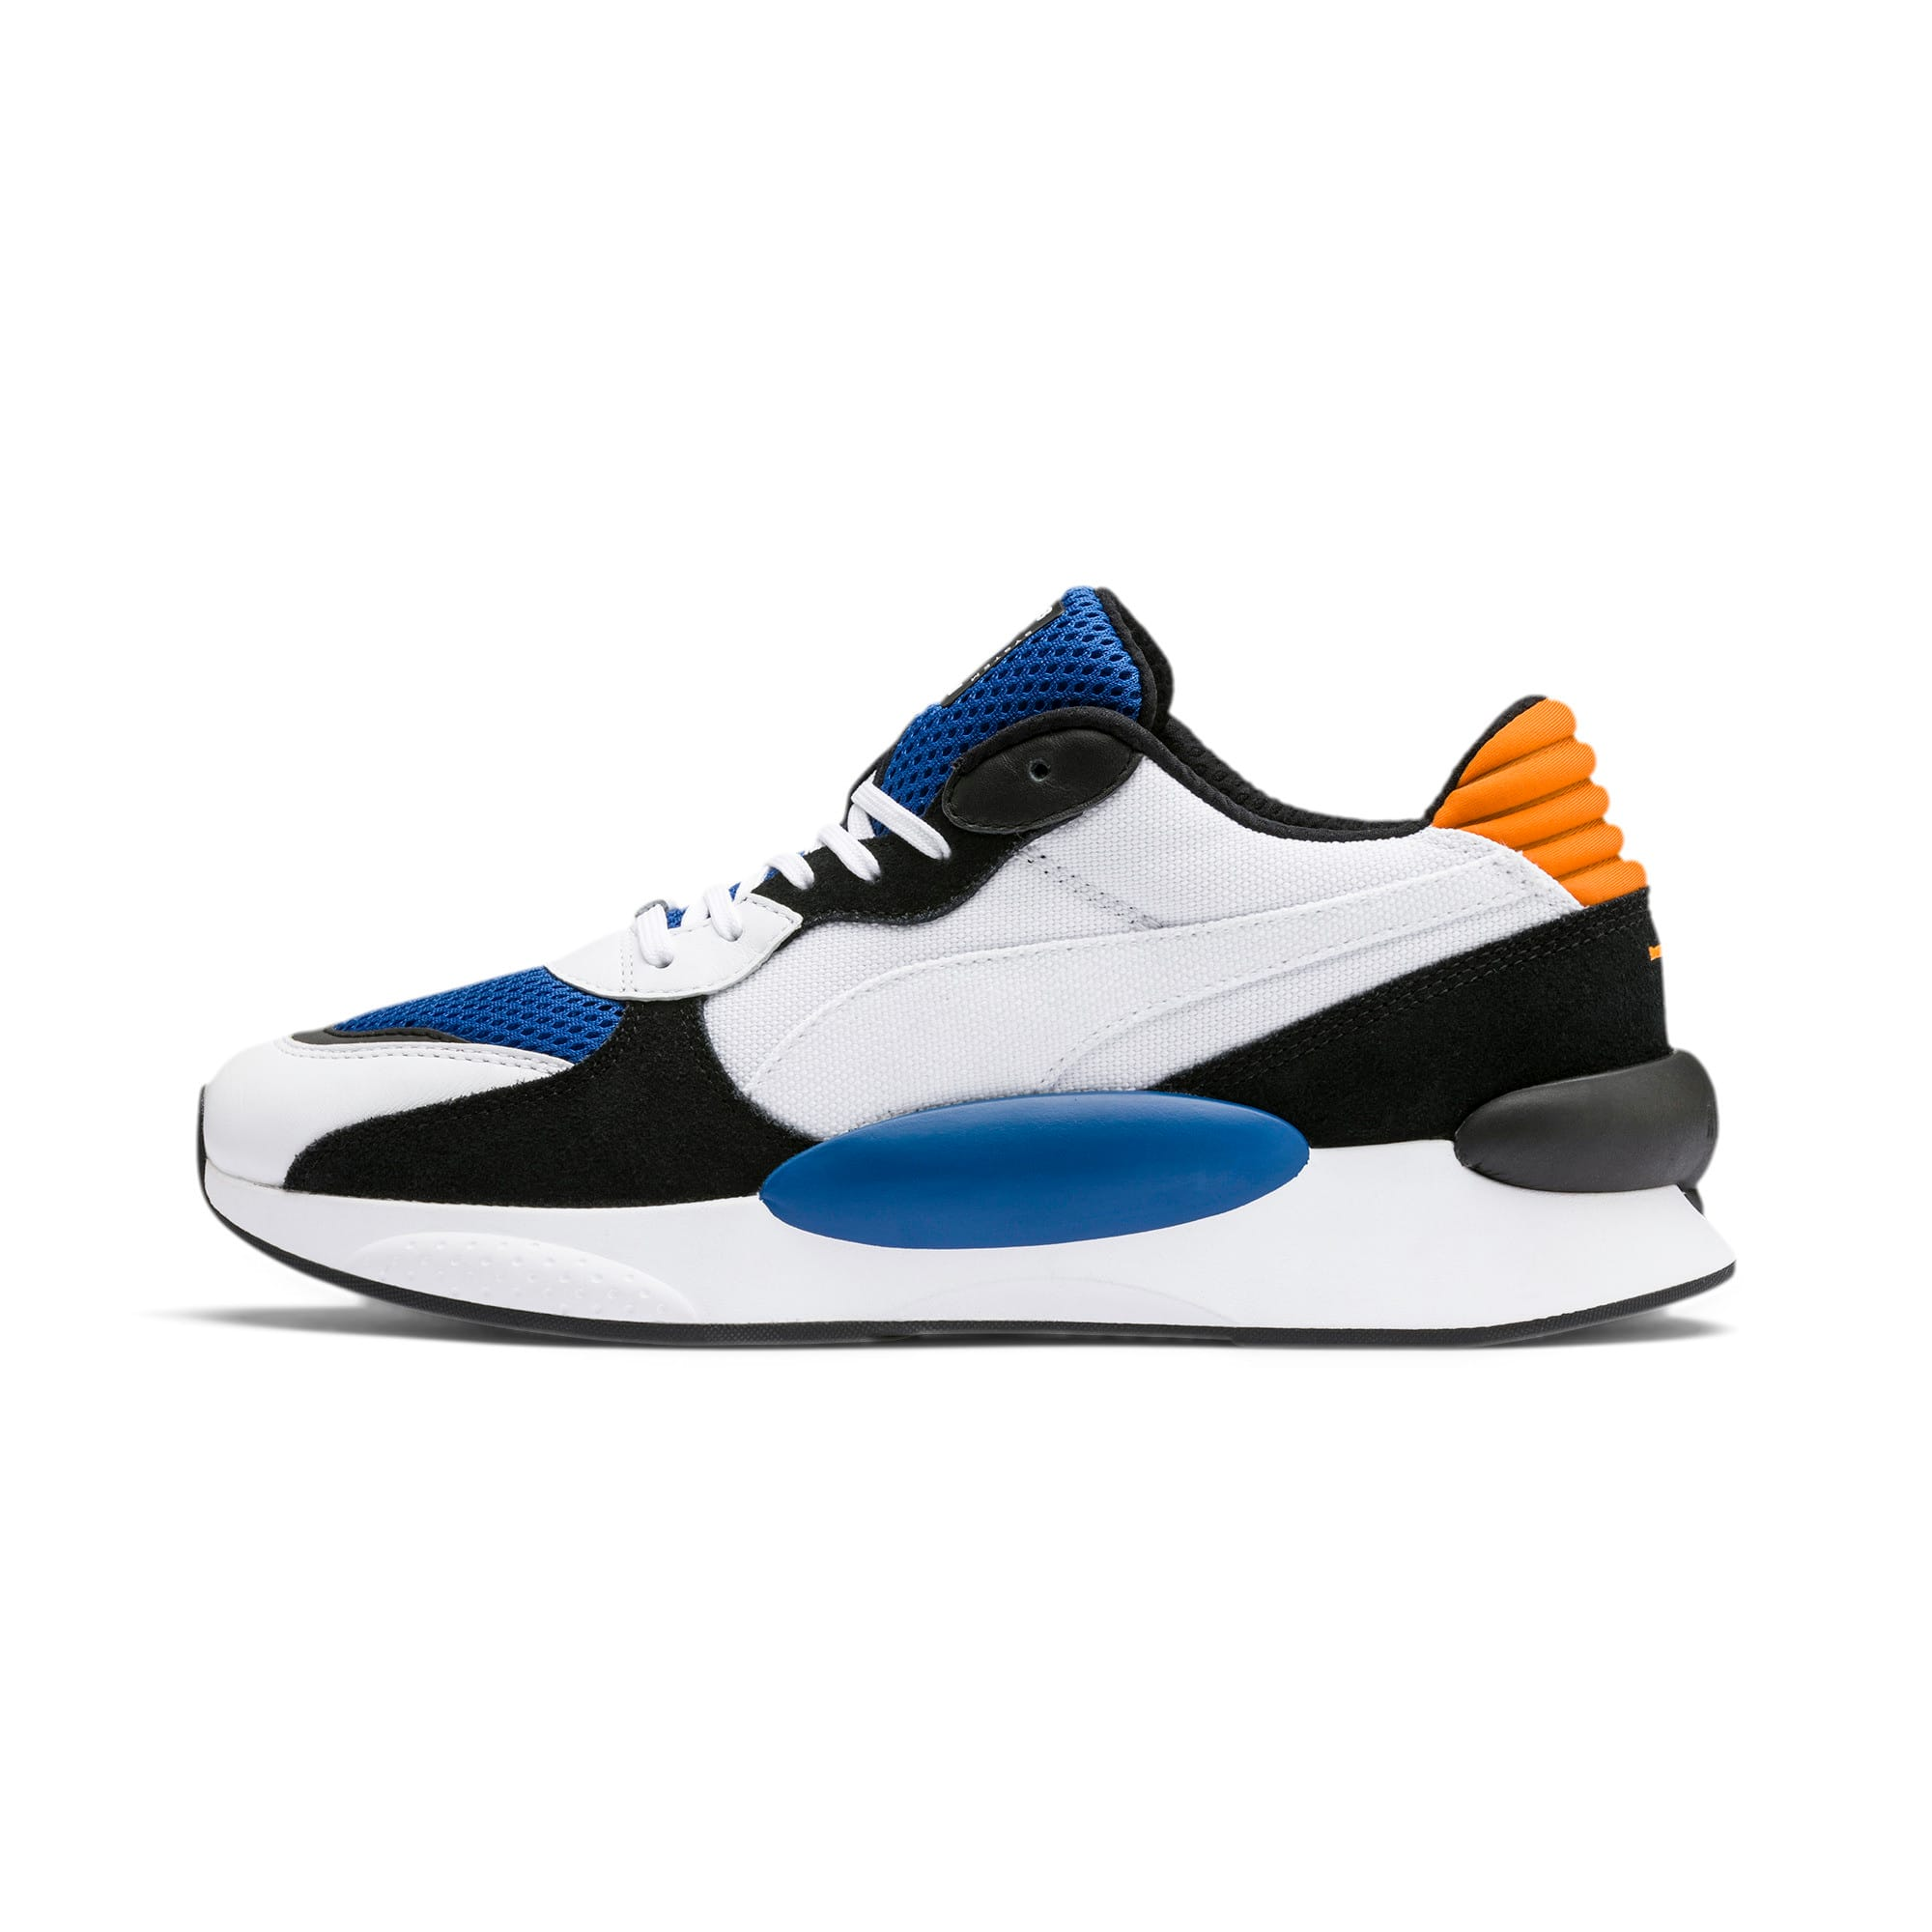 Thumbnail 1 of RS 9.8 Cosmic Sneakers, Puma White-Galaxy Blue, medium